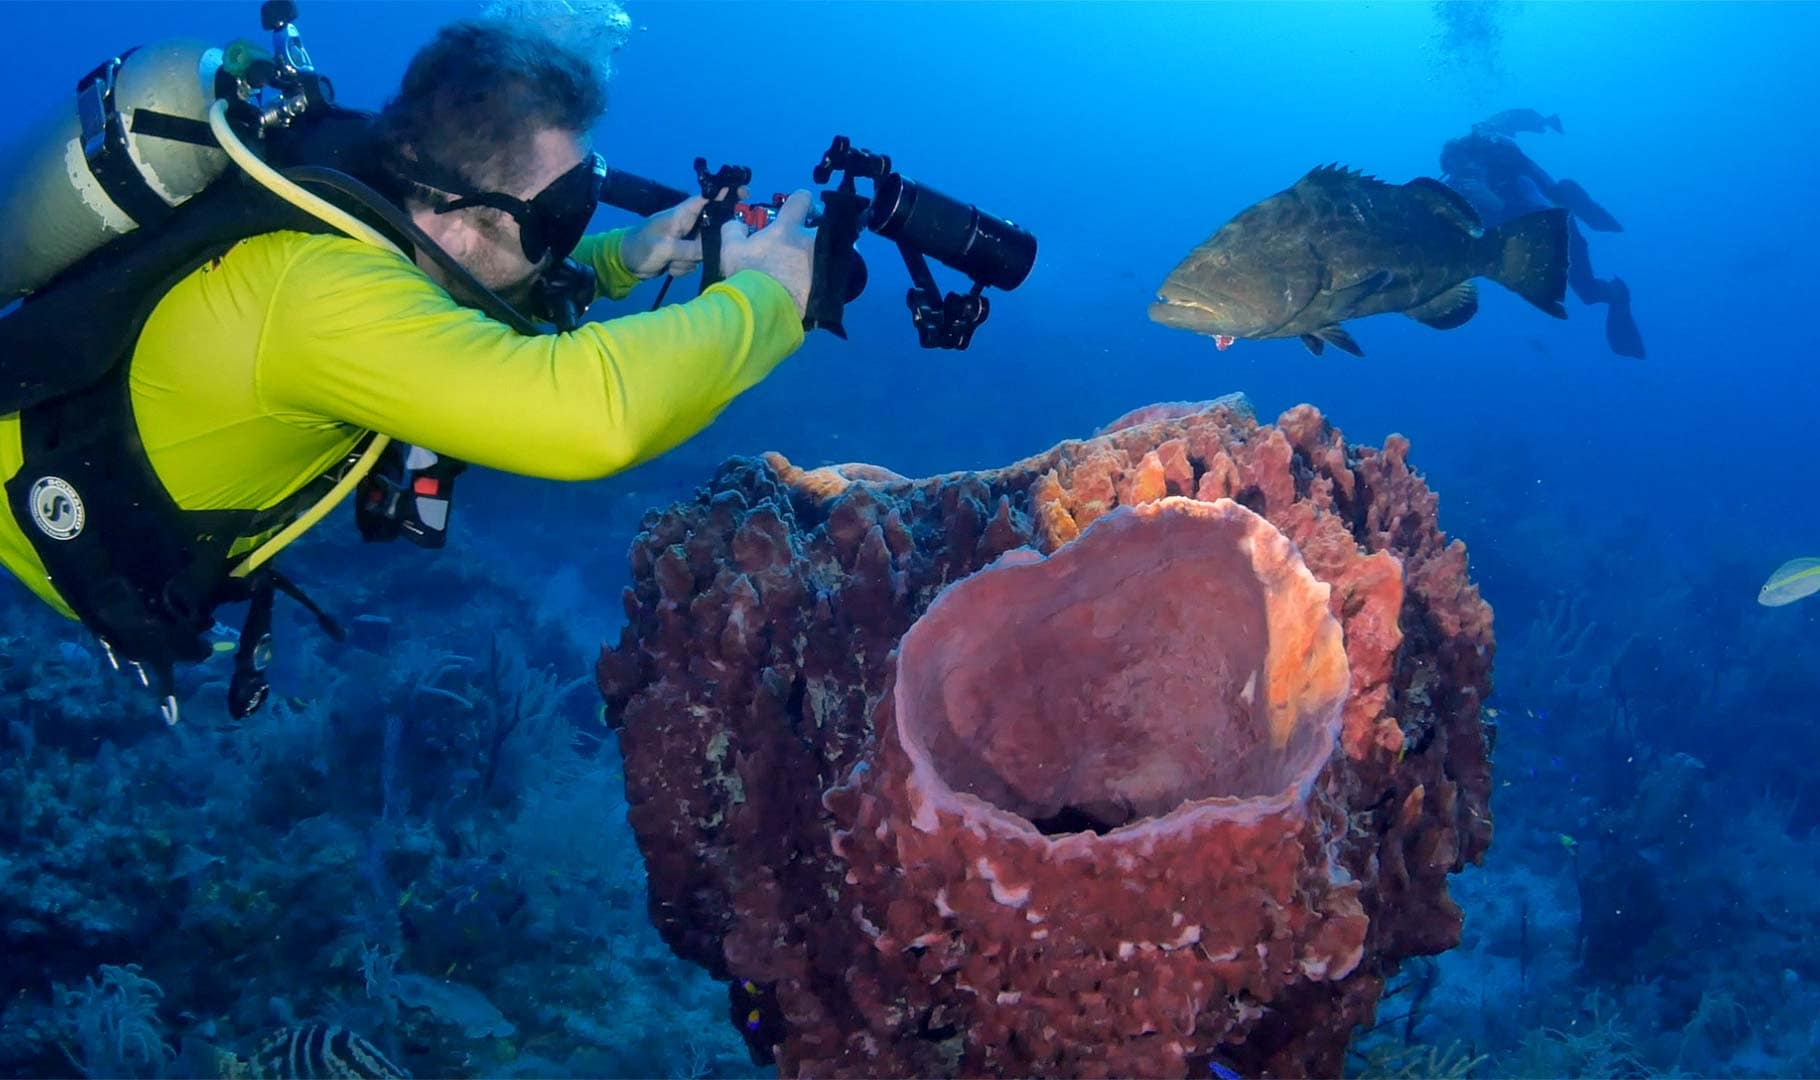 Diver off the Cuban scuba diving liveaboard taking a picture of a black grouper